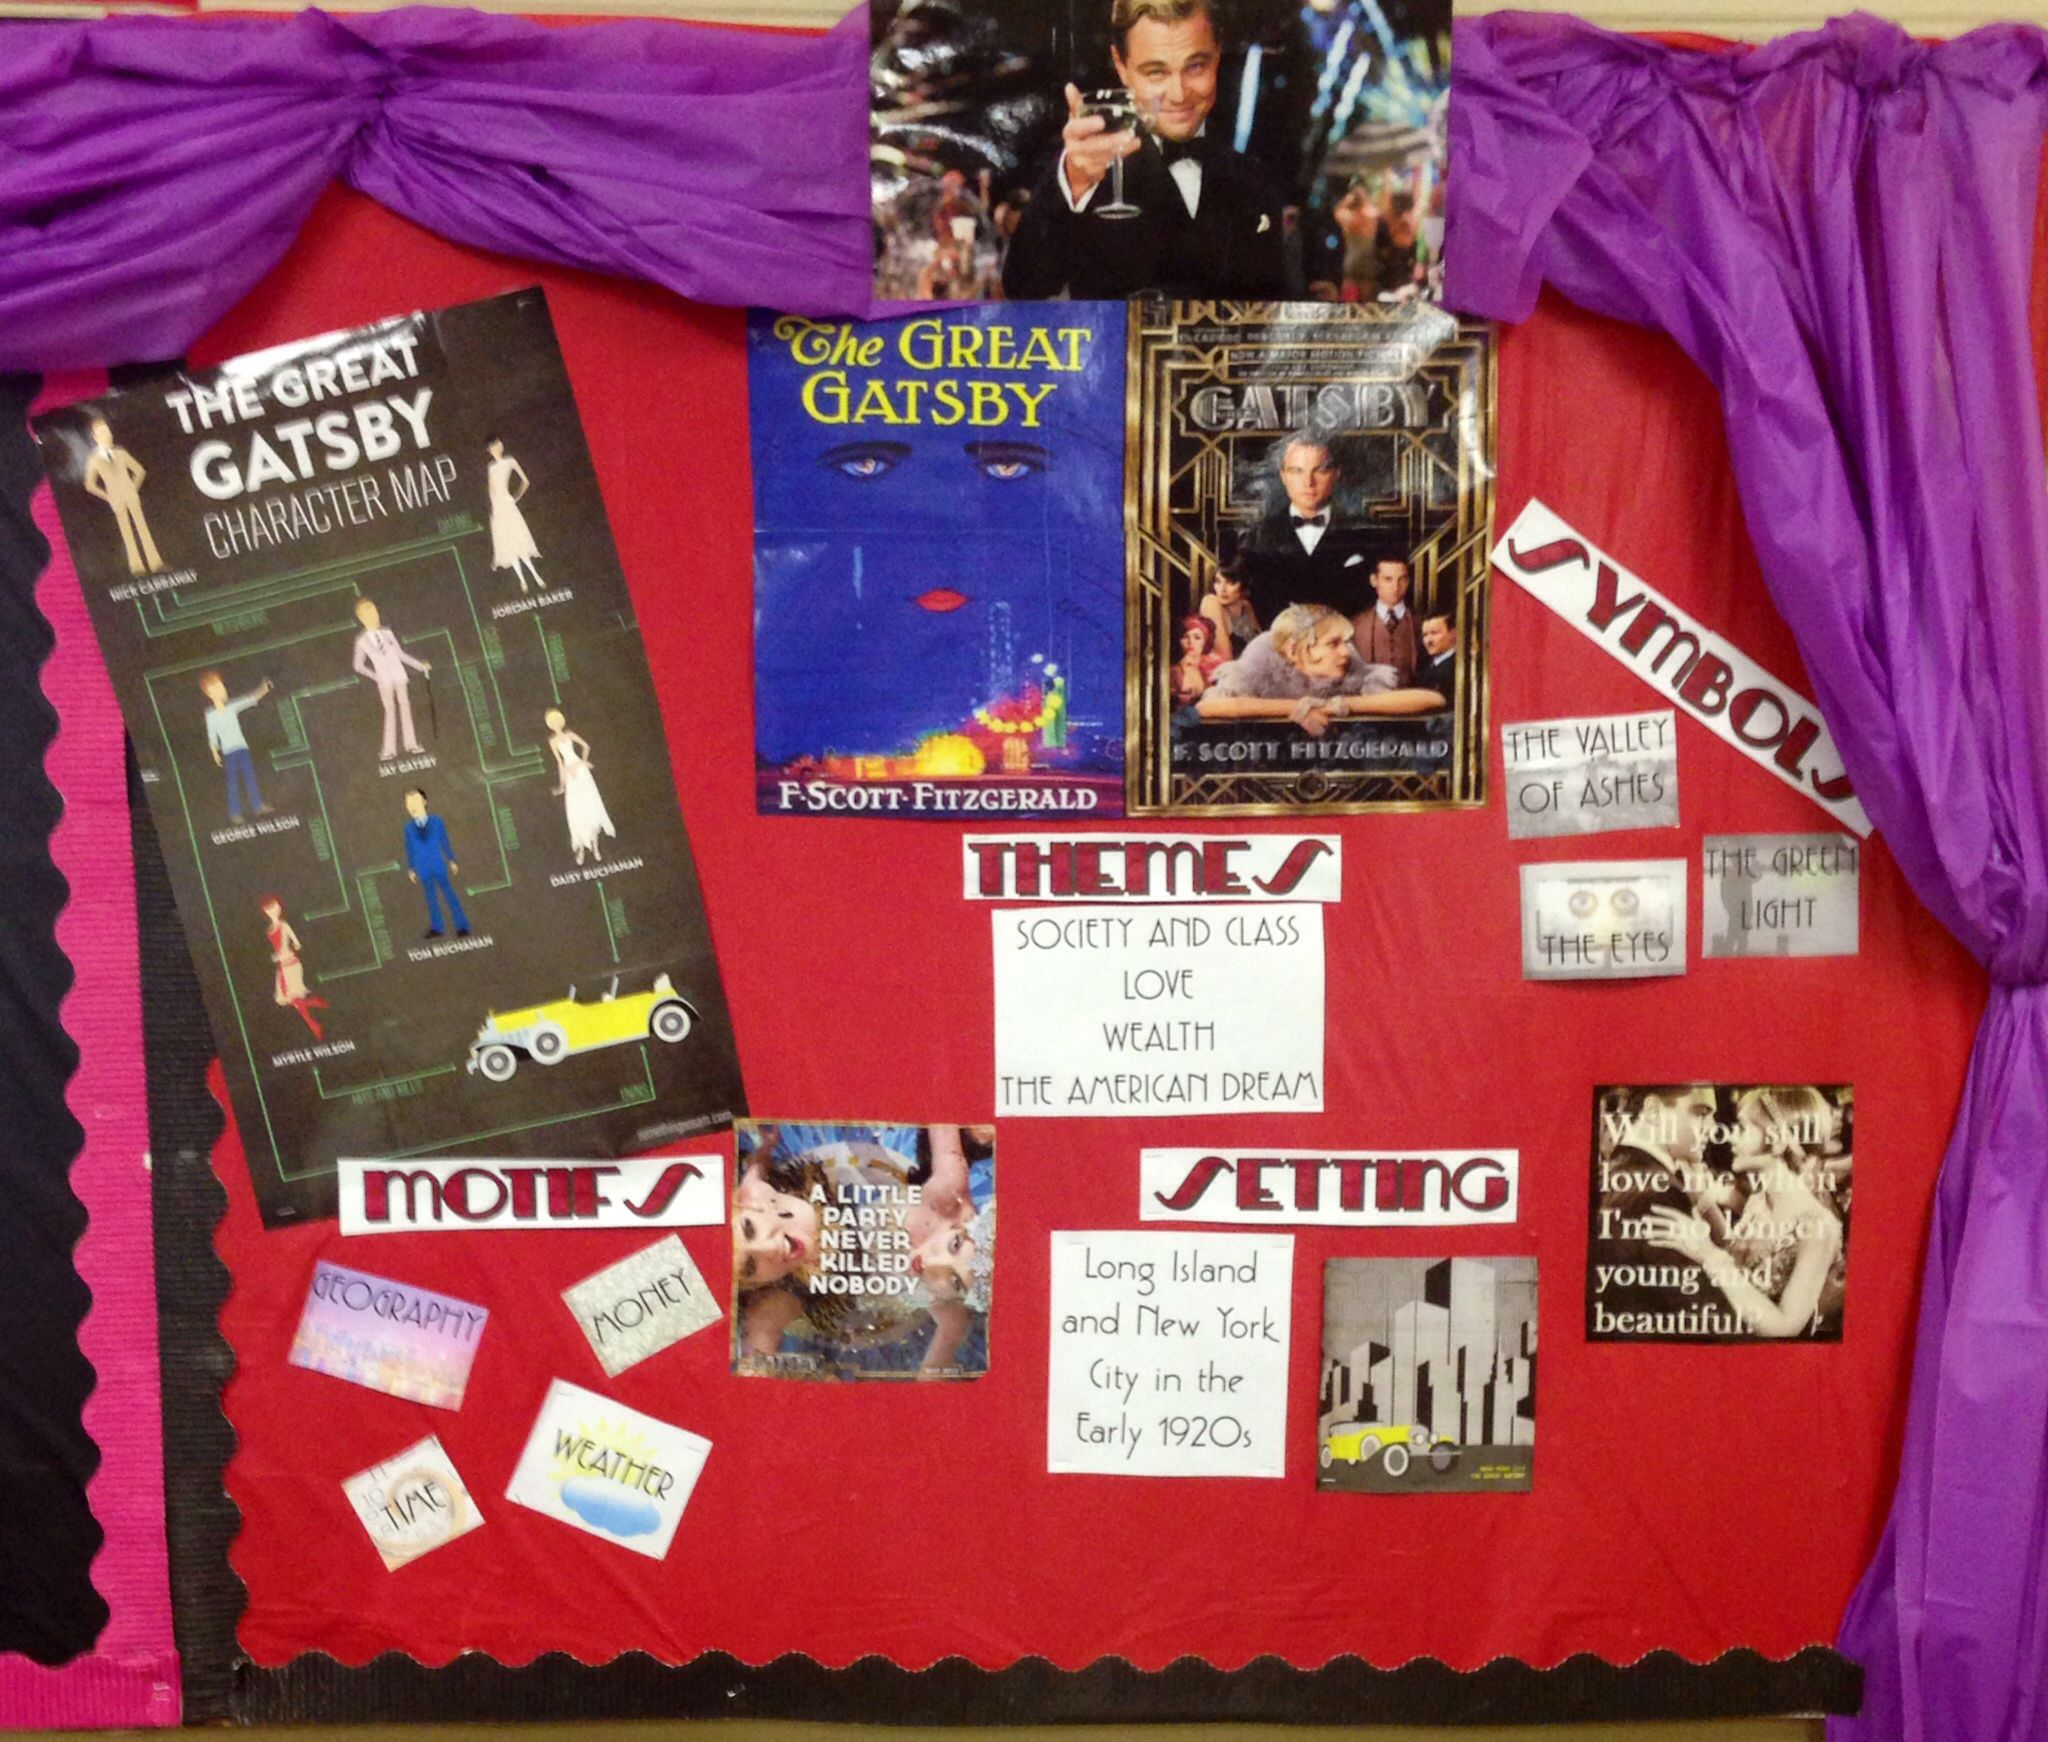 Great gatsby bulletin board themes characters symbols and great gatsby bulletin board themes characters symbols and motifs includes images buycottarizona Choice Image